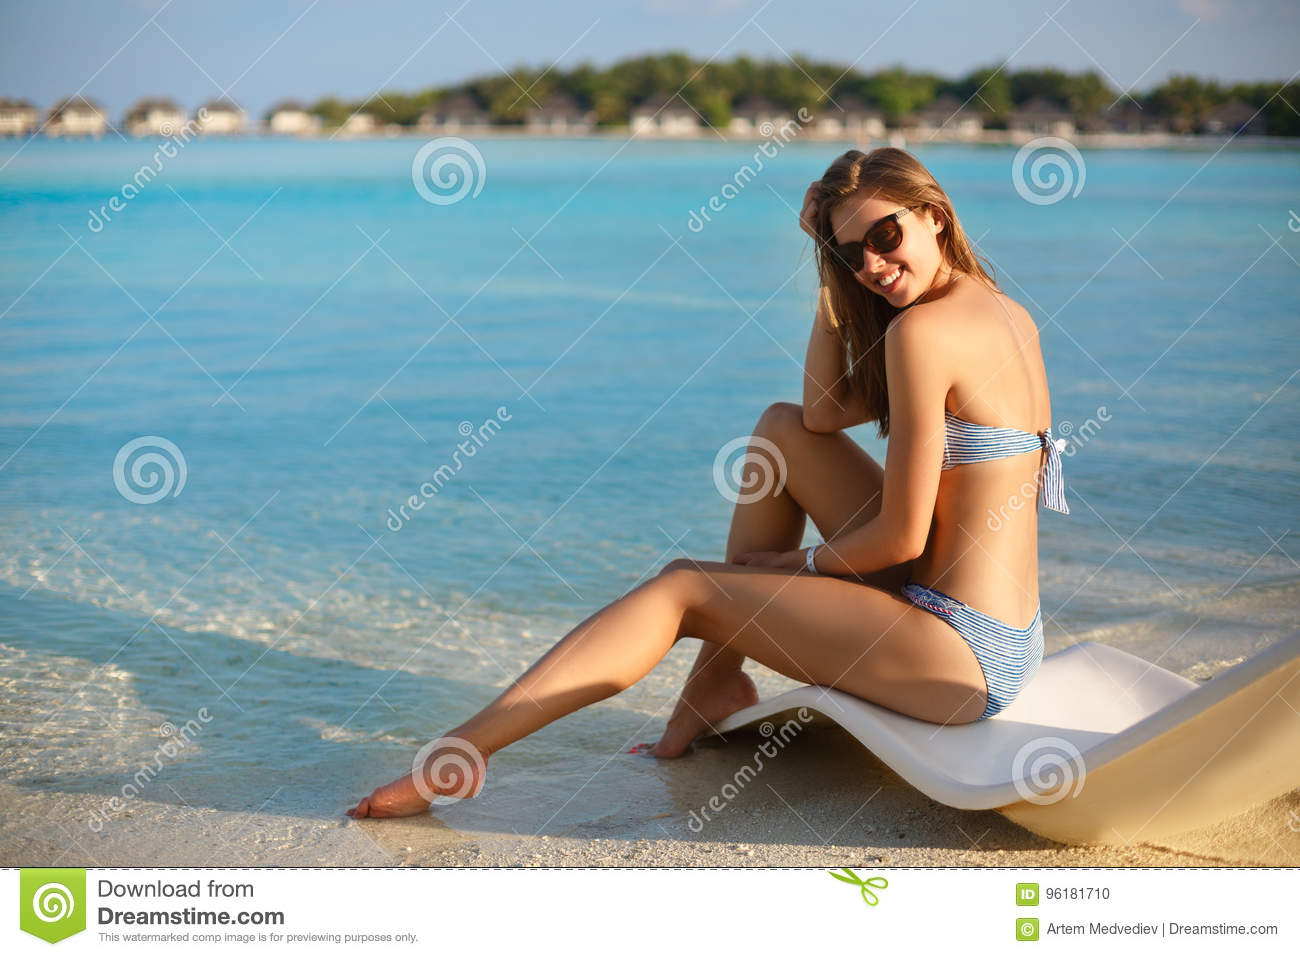 Young woman relaxing in a modern deck chair on a tropical beach with glasses on. Girl is sitting on a beach sun bed